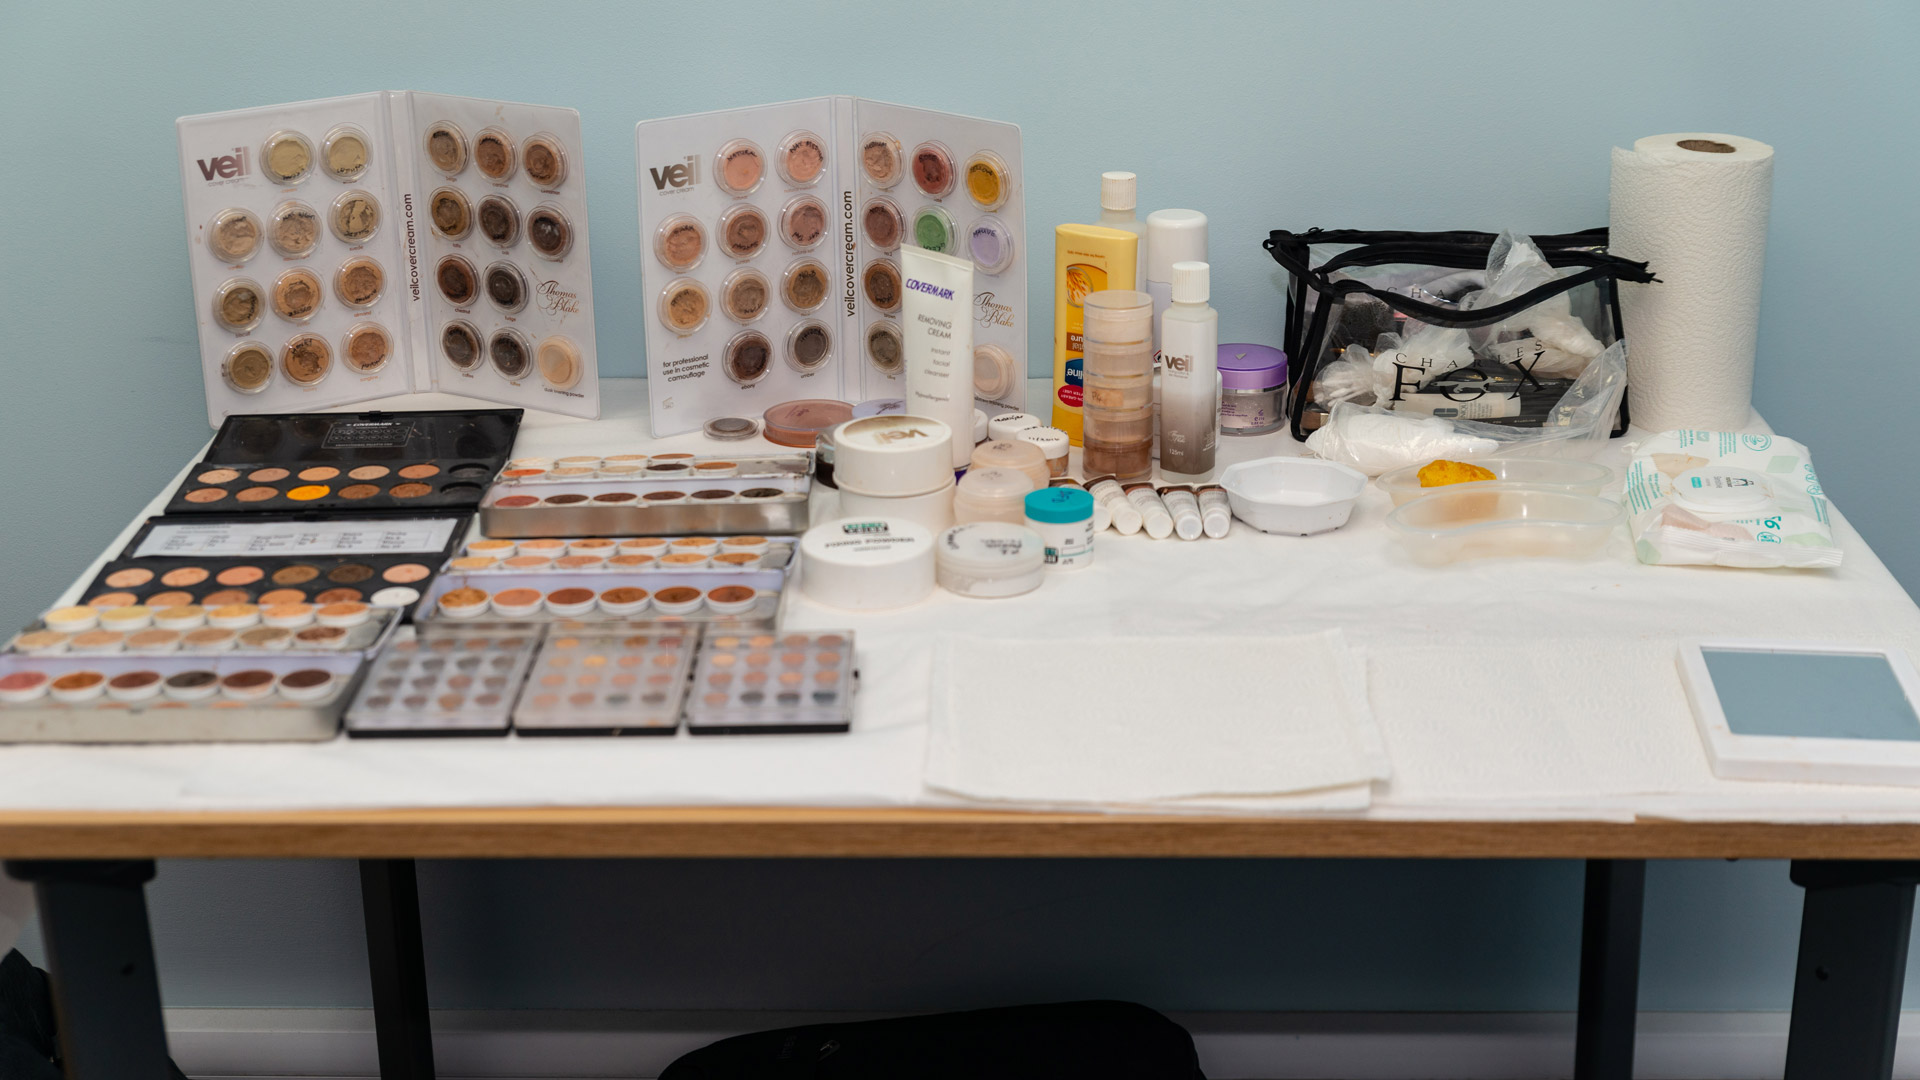 Skin camouflage products laid out on a table